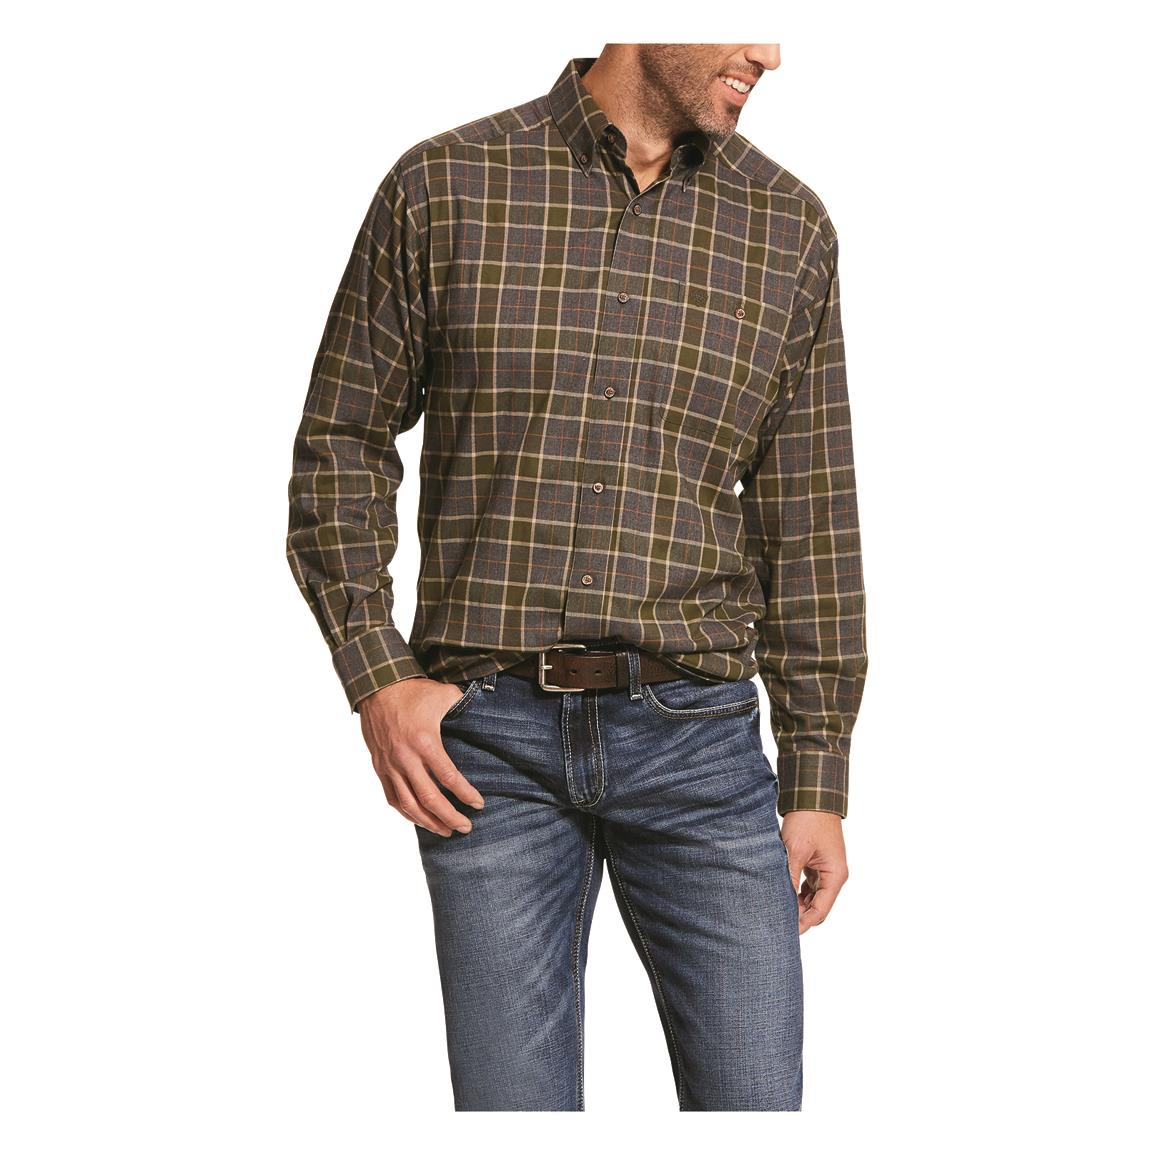 Ariat Men's Performance Flannel Long Sleeve Shirt, Elridge Multi